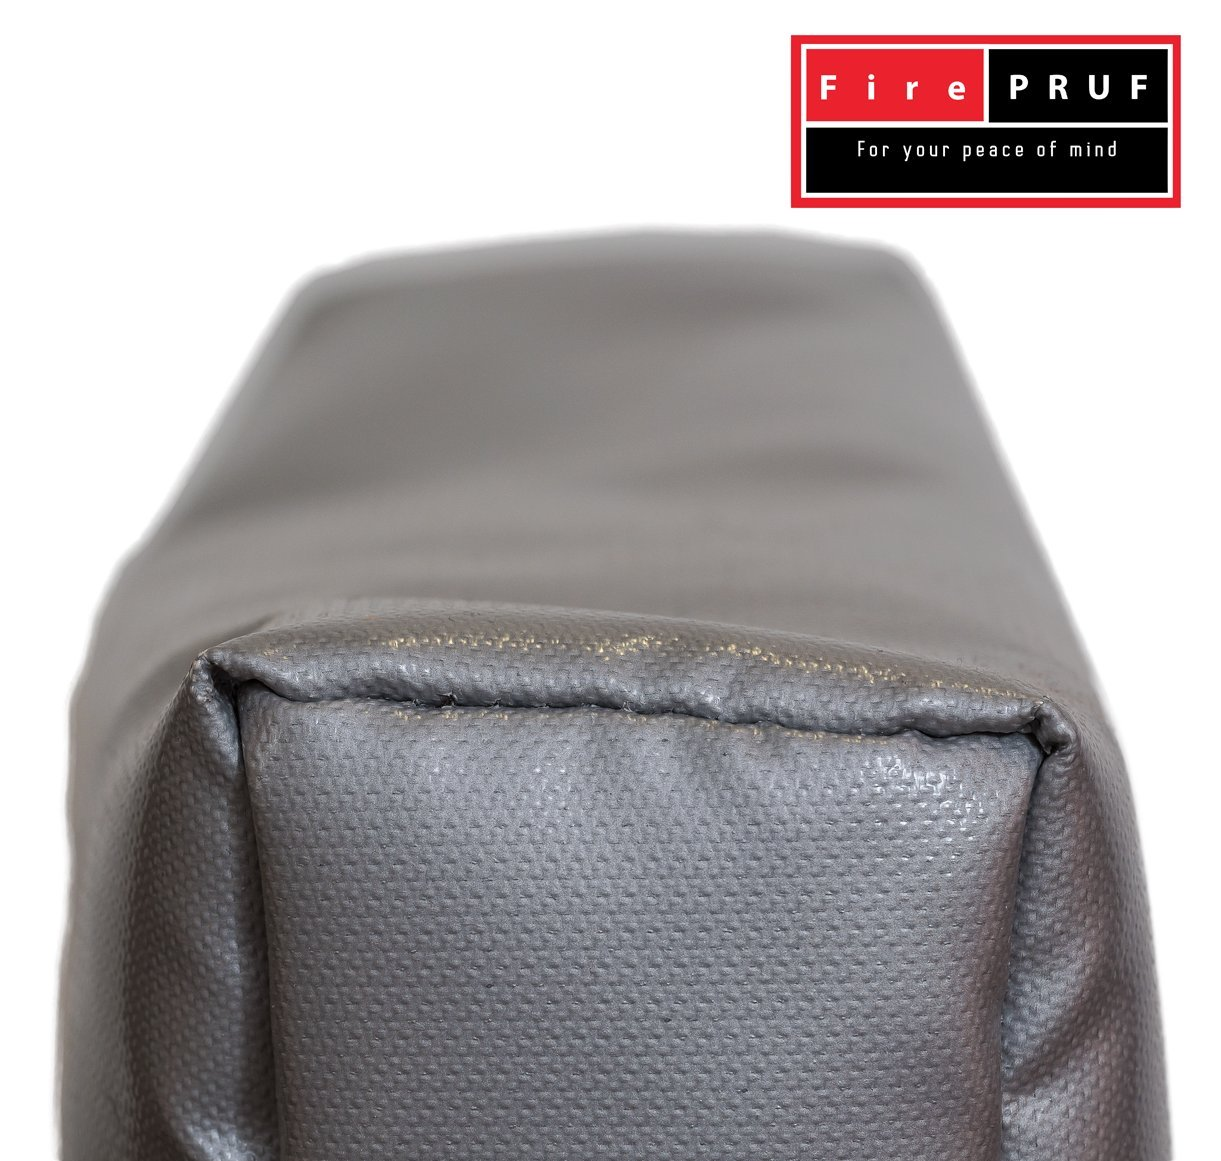 Certified Fireproof Bag for Documents, Money, Office Files & Memory Cards - Both Fire and Water Resistant, Ideal for Evacuation and Emergencies - 100% Fire Protected Zipper, Patent Pending by QIAYA (Image #4)